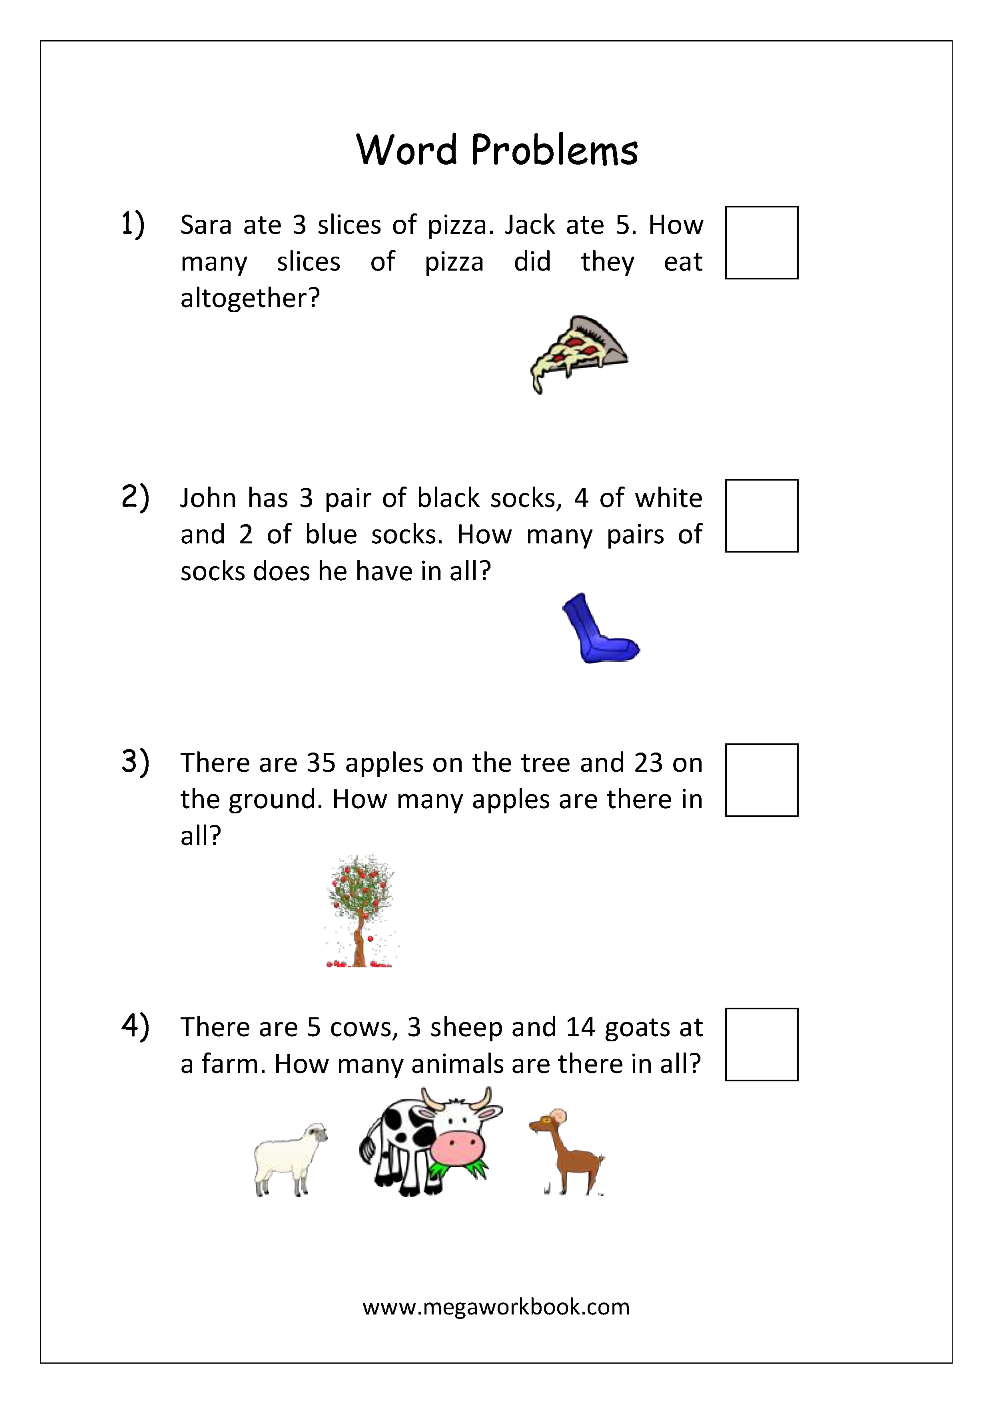 Word Problems on Kindergarten Math Worksheets With Animals